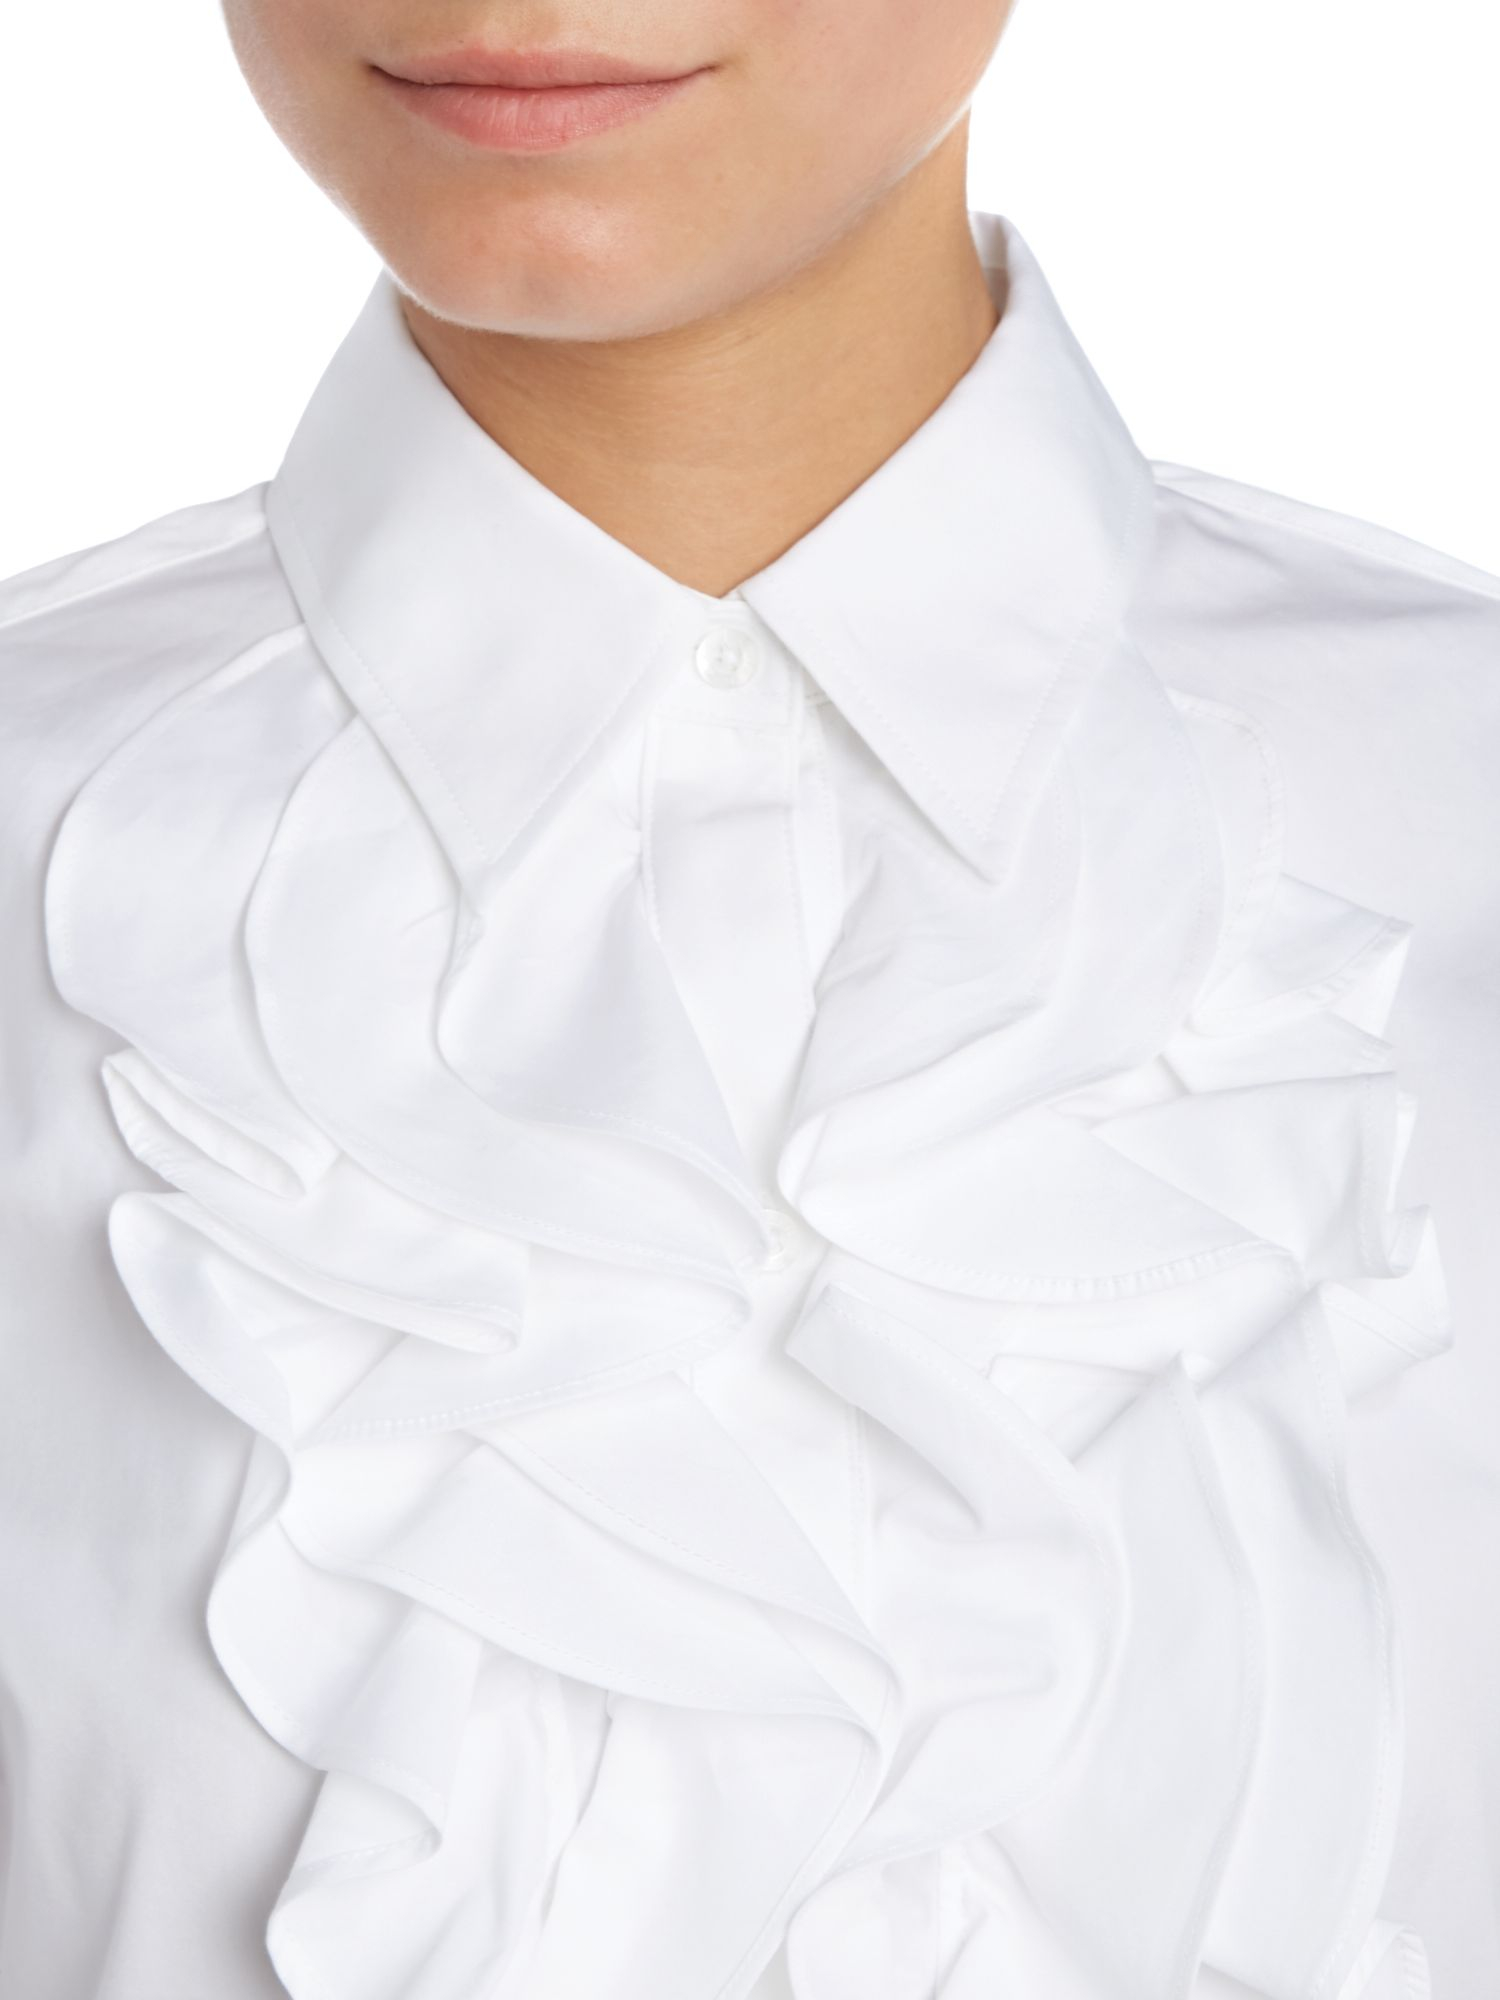 lauren by ralph lauren mandell ruffle front shirt in white lyst. Black Bedroom Furniture Sets. Home Design Ideas